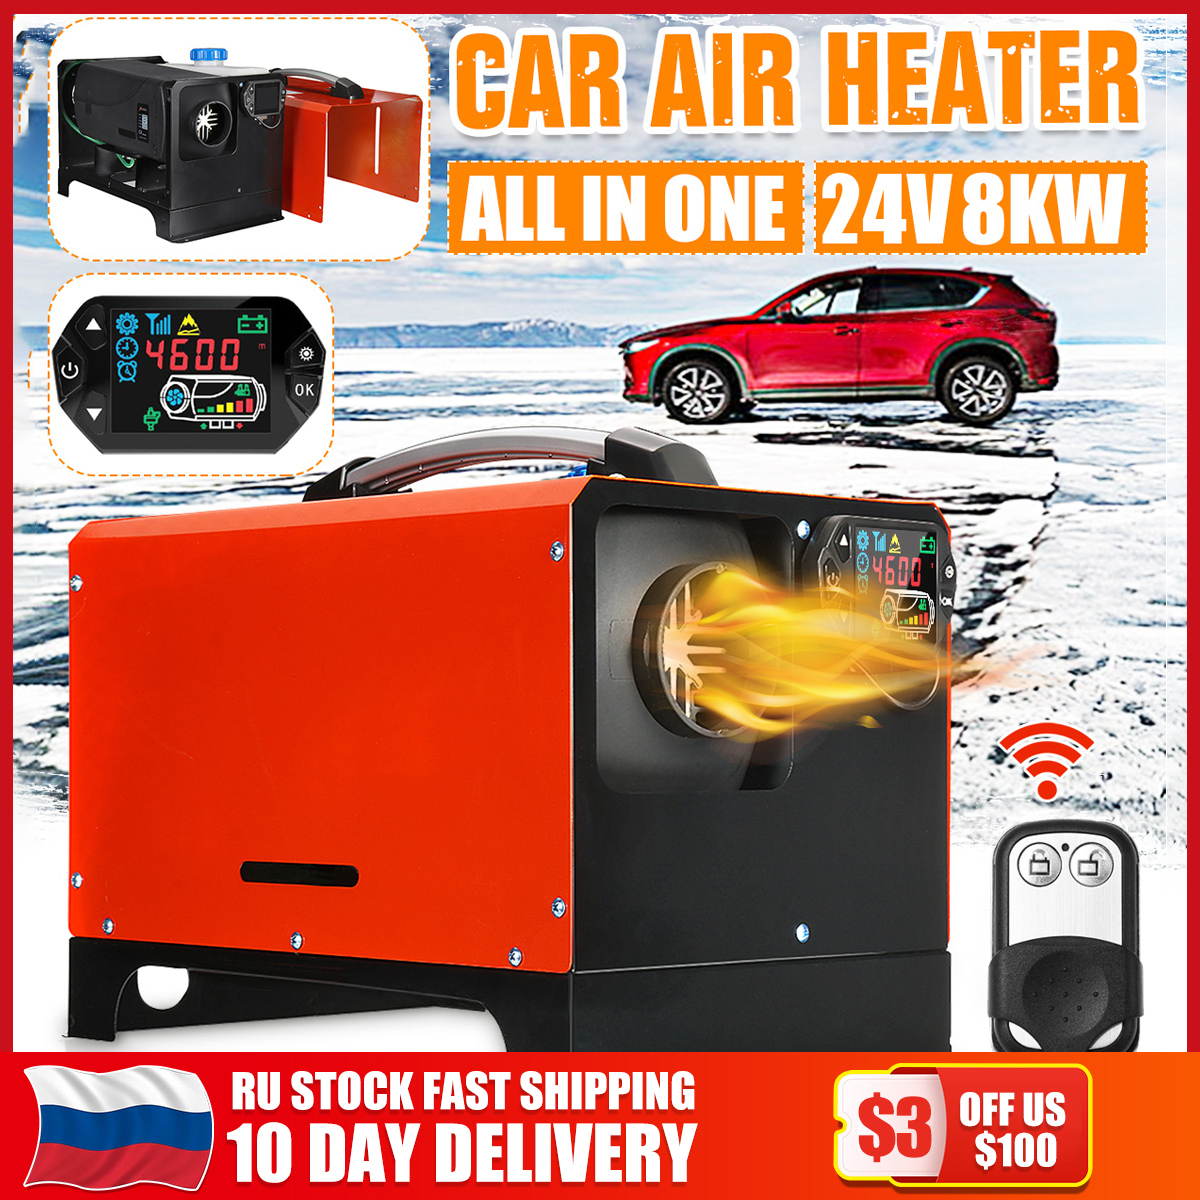 All In One 1-8KW 12V/24V Adjustable Diesels Air Car Heater New Red LCD Switch+ Remote Control Integrated Machine For Van Boat RV